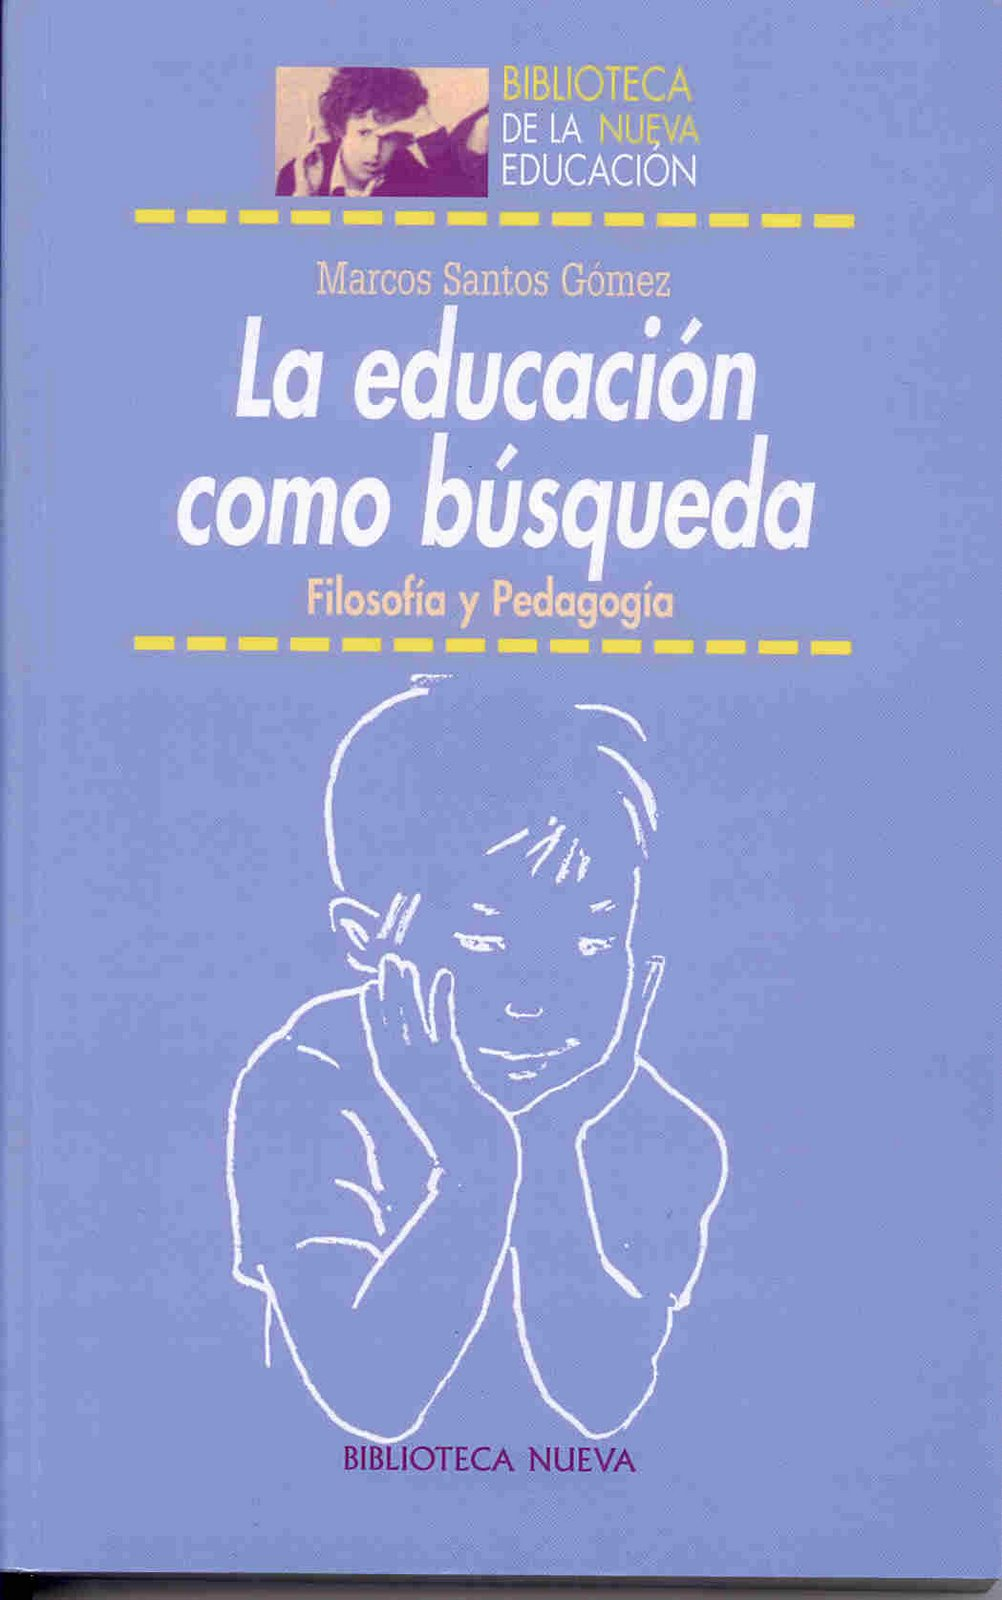 LIBRO DEL AUTOR